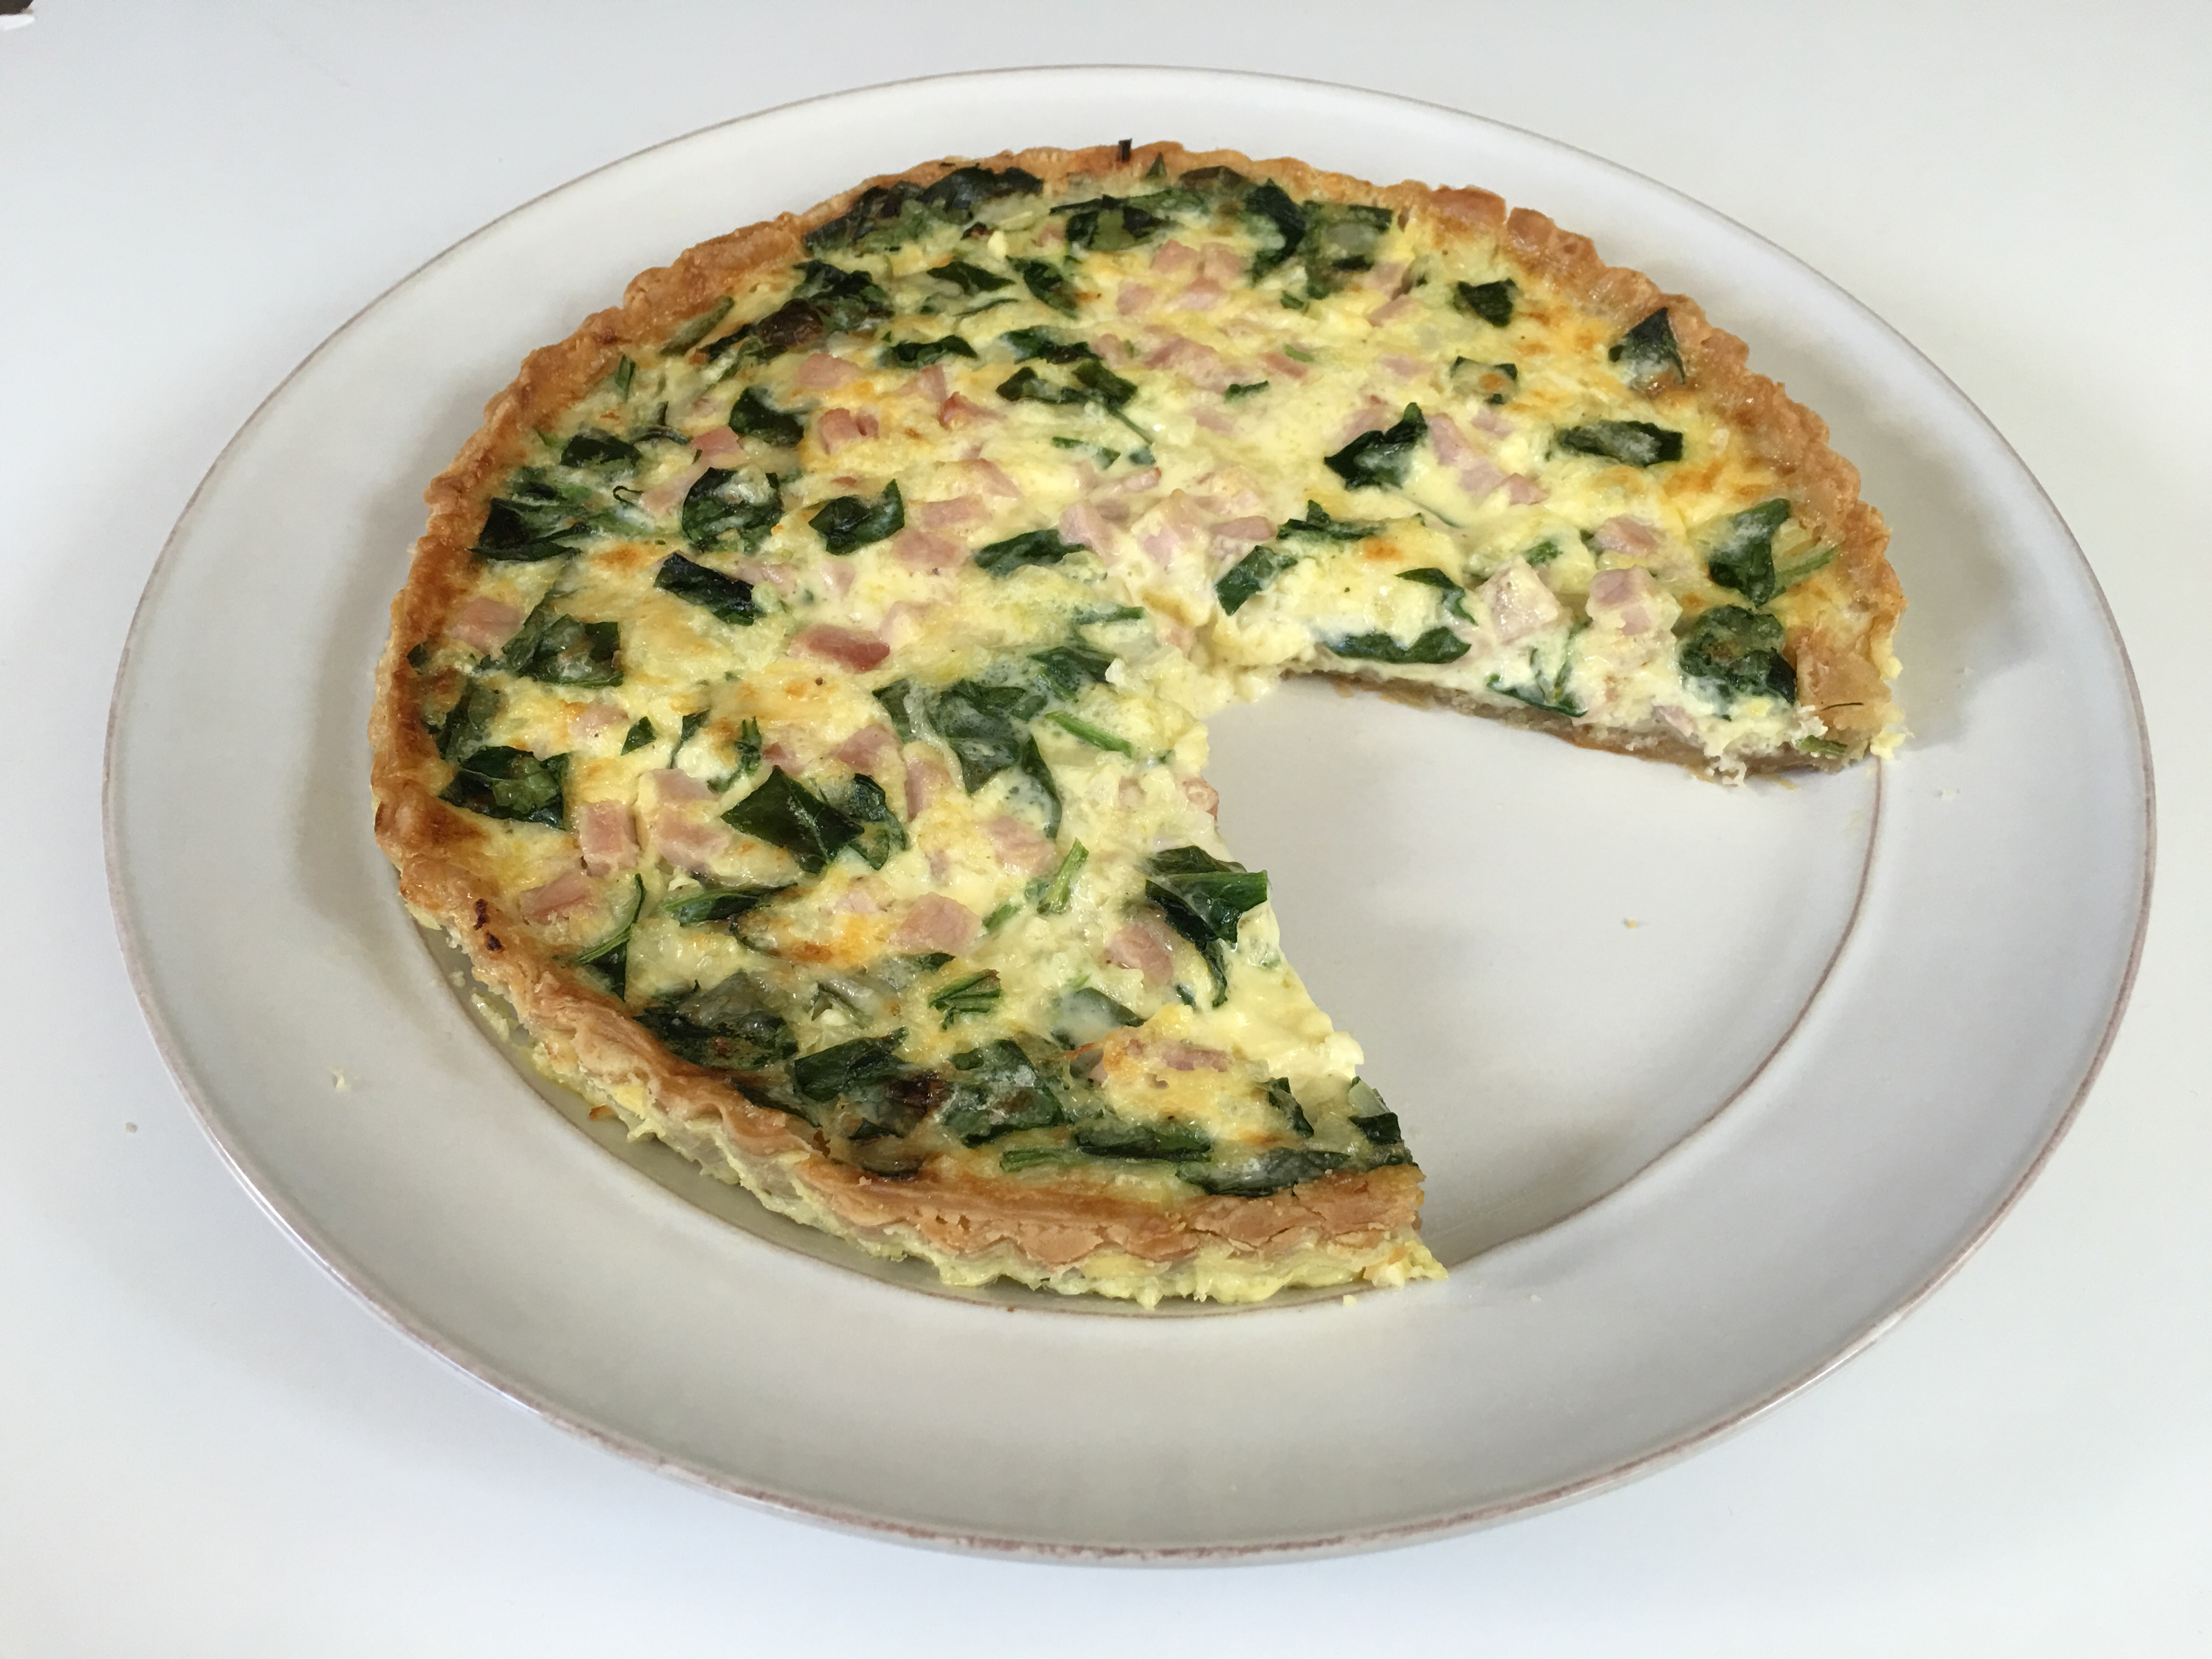 QUICHE- The Basics